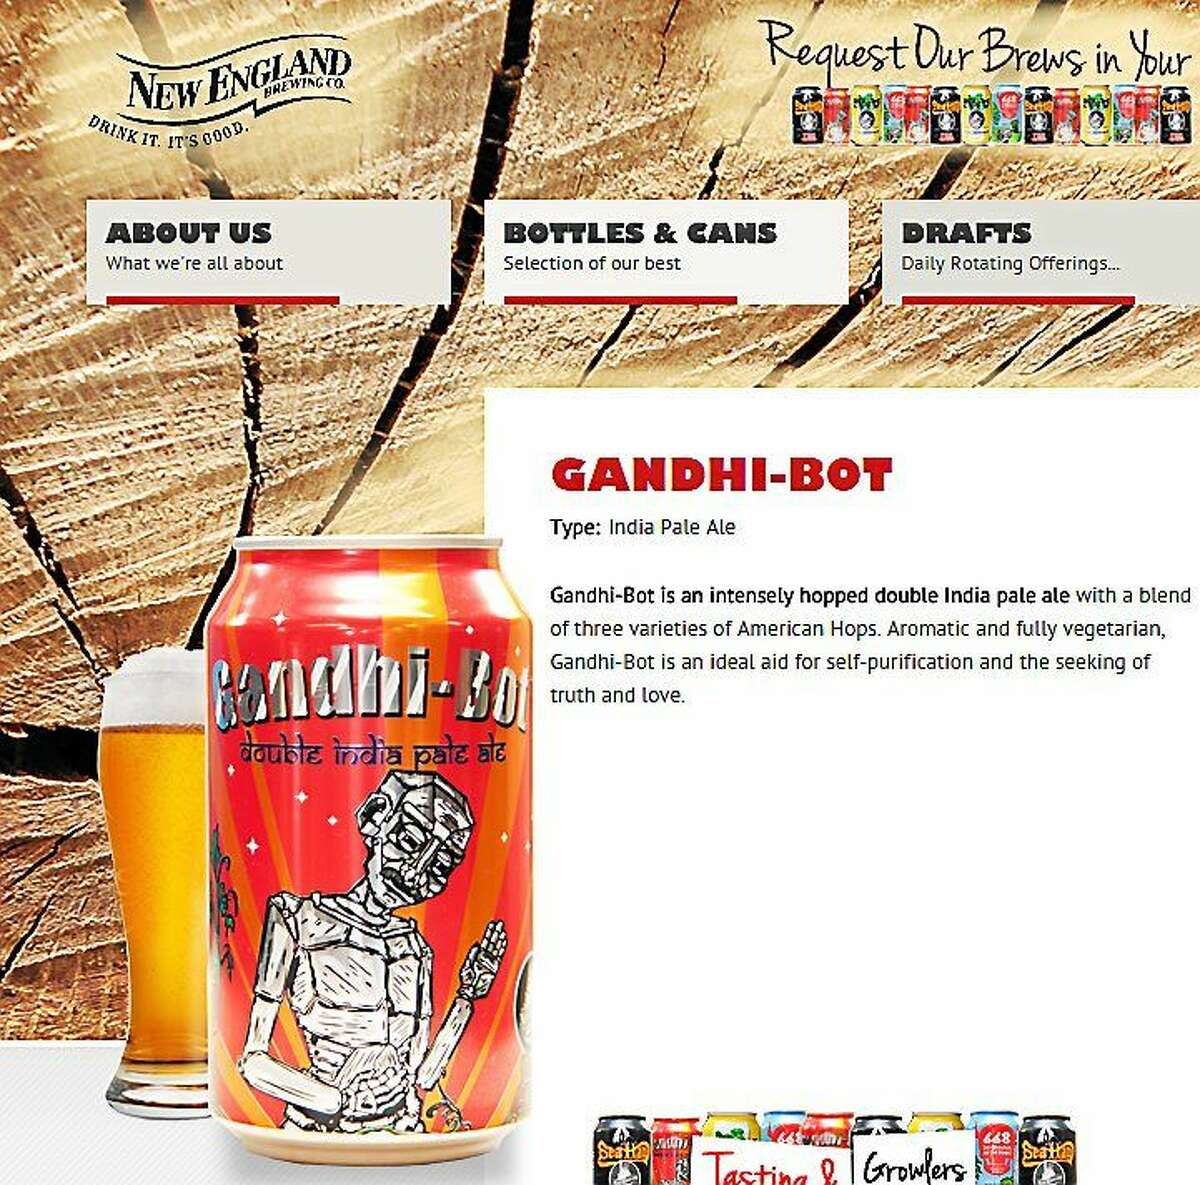 A screenshot of the New England Brewing Company's website shows the Gandhi-Bot label.